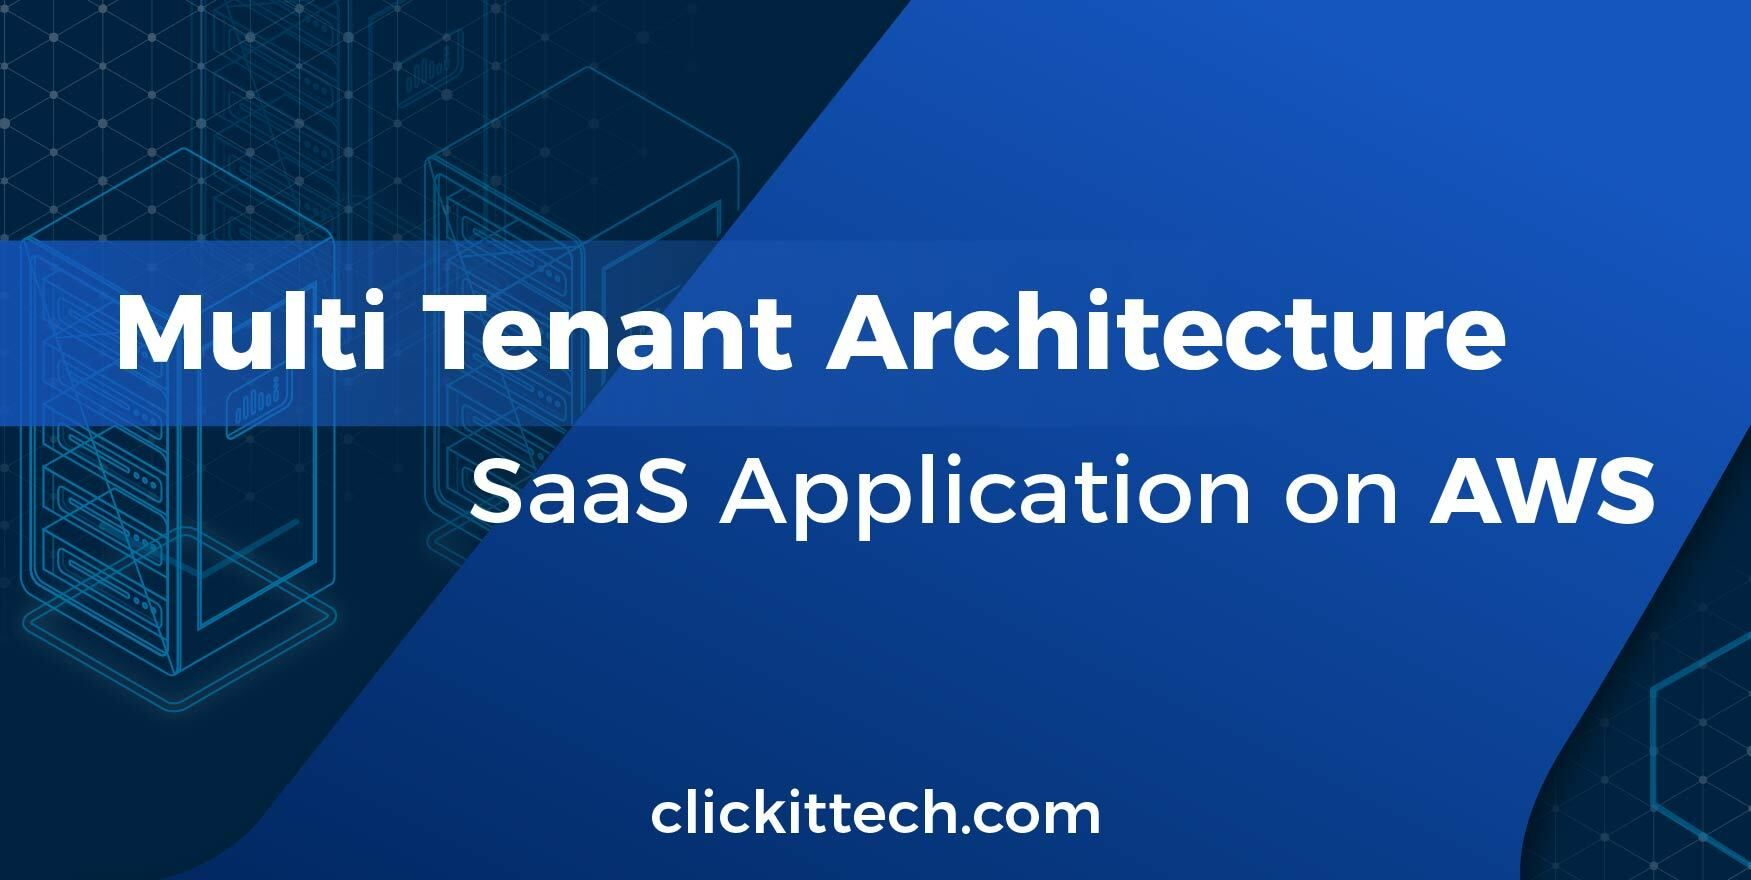 Multi Tenant Architecture Is A Software Architecture That Runs Multiple Single Instances Of The Software On A Single Physical Server Architecture Tenants Saas